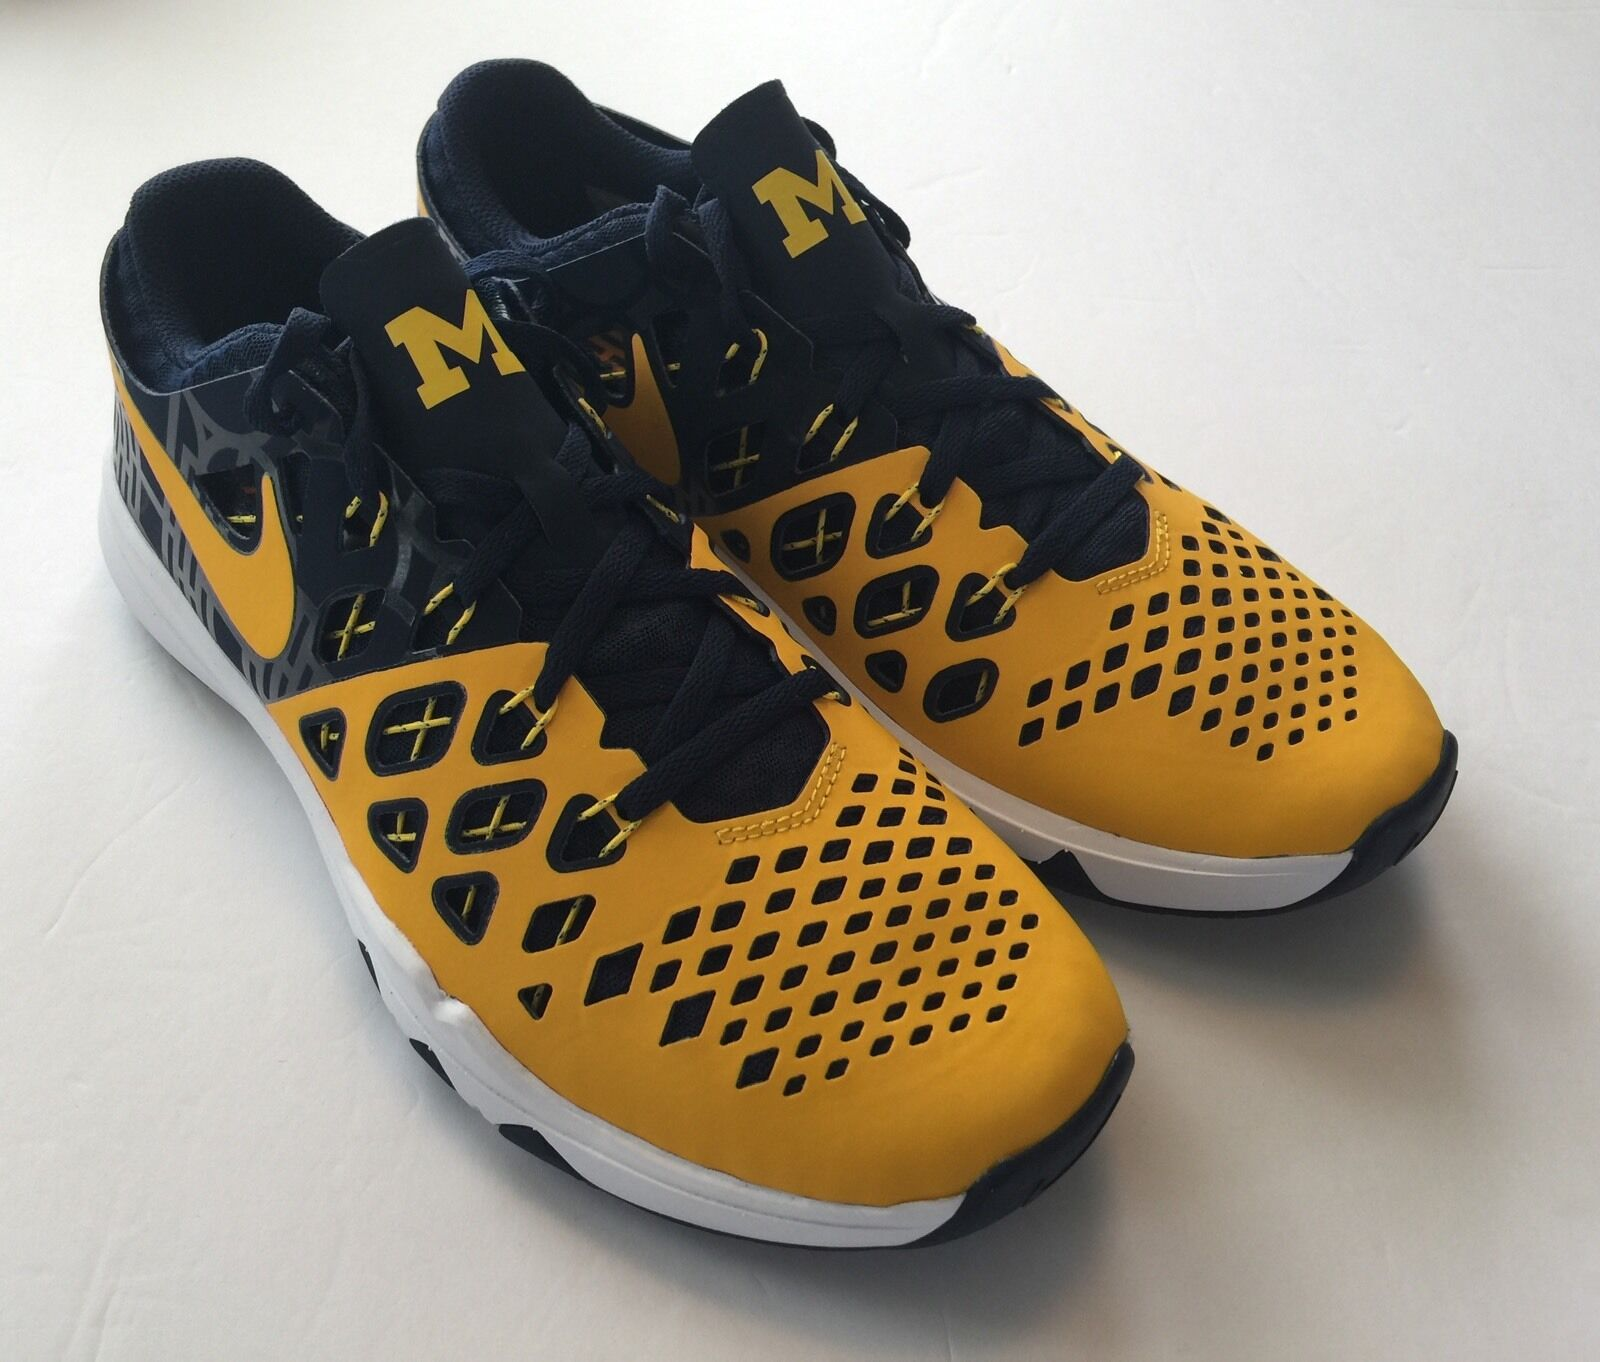 Nike ID Michigan Wolverines Speed Train 4 AMP Limited Edition Shoes Size 8.5